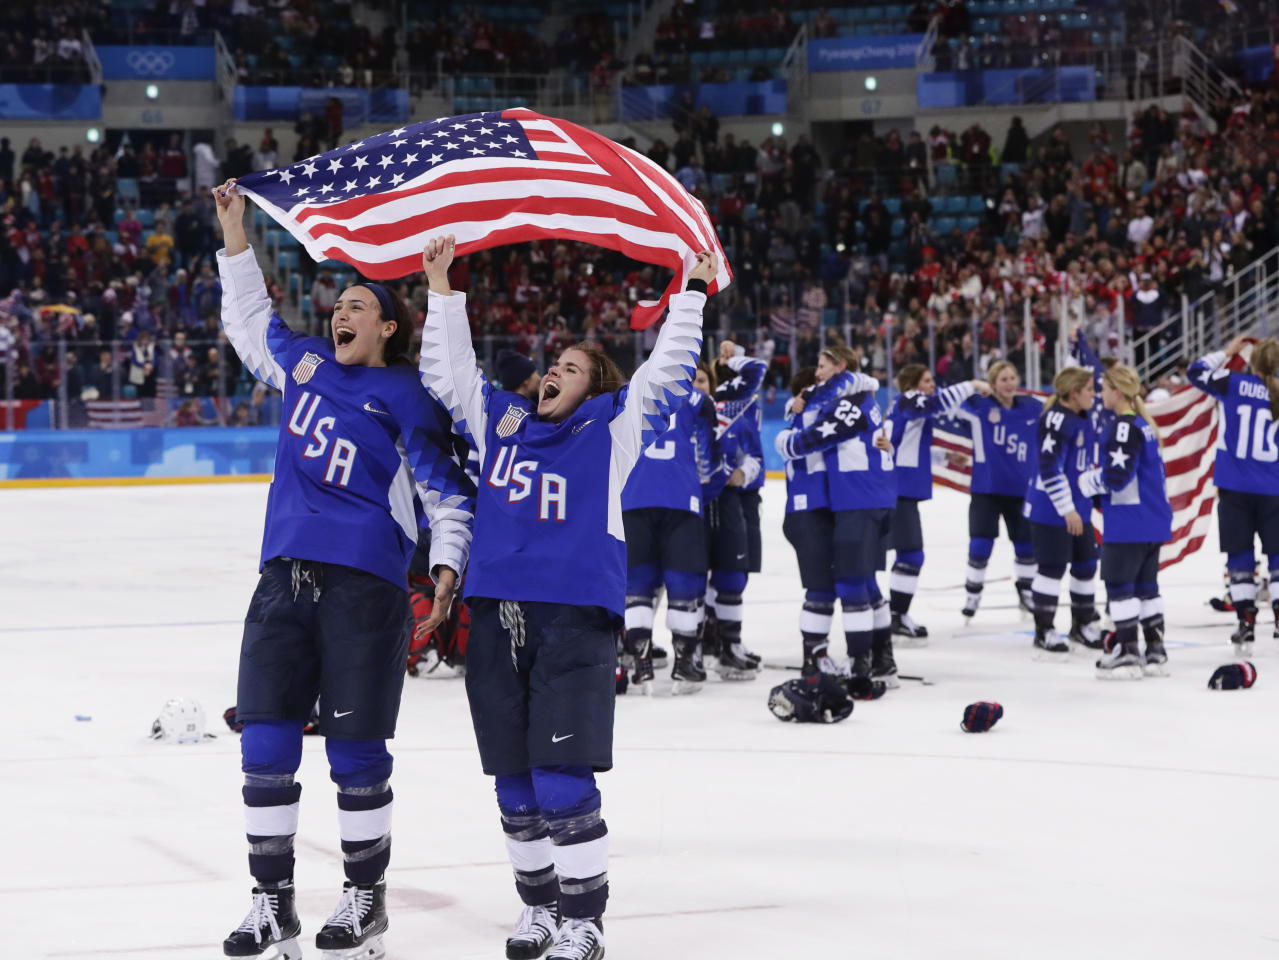 <p>The United States players celebrate after winning the women's gold medal hockey game against Canada at the 2018 Winter Olympics in Gangneung, South Korea, Thursday, Feb. 22, 2018. (AP Photo/Frank Franklin II) </p>